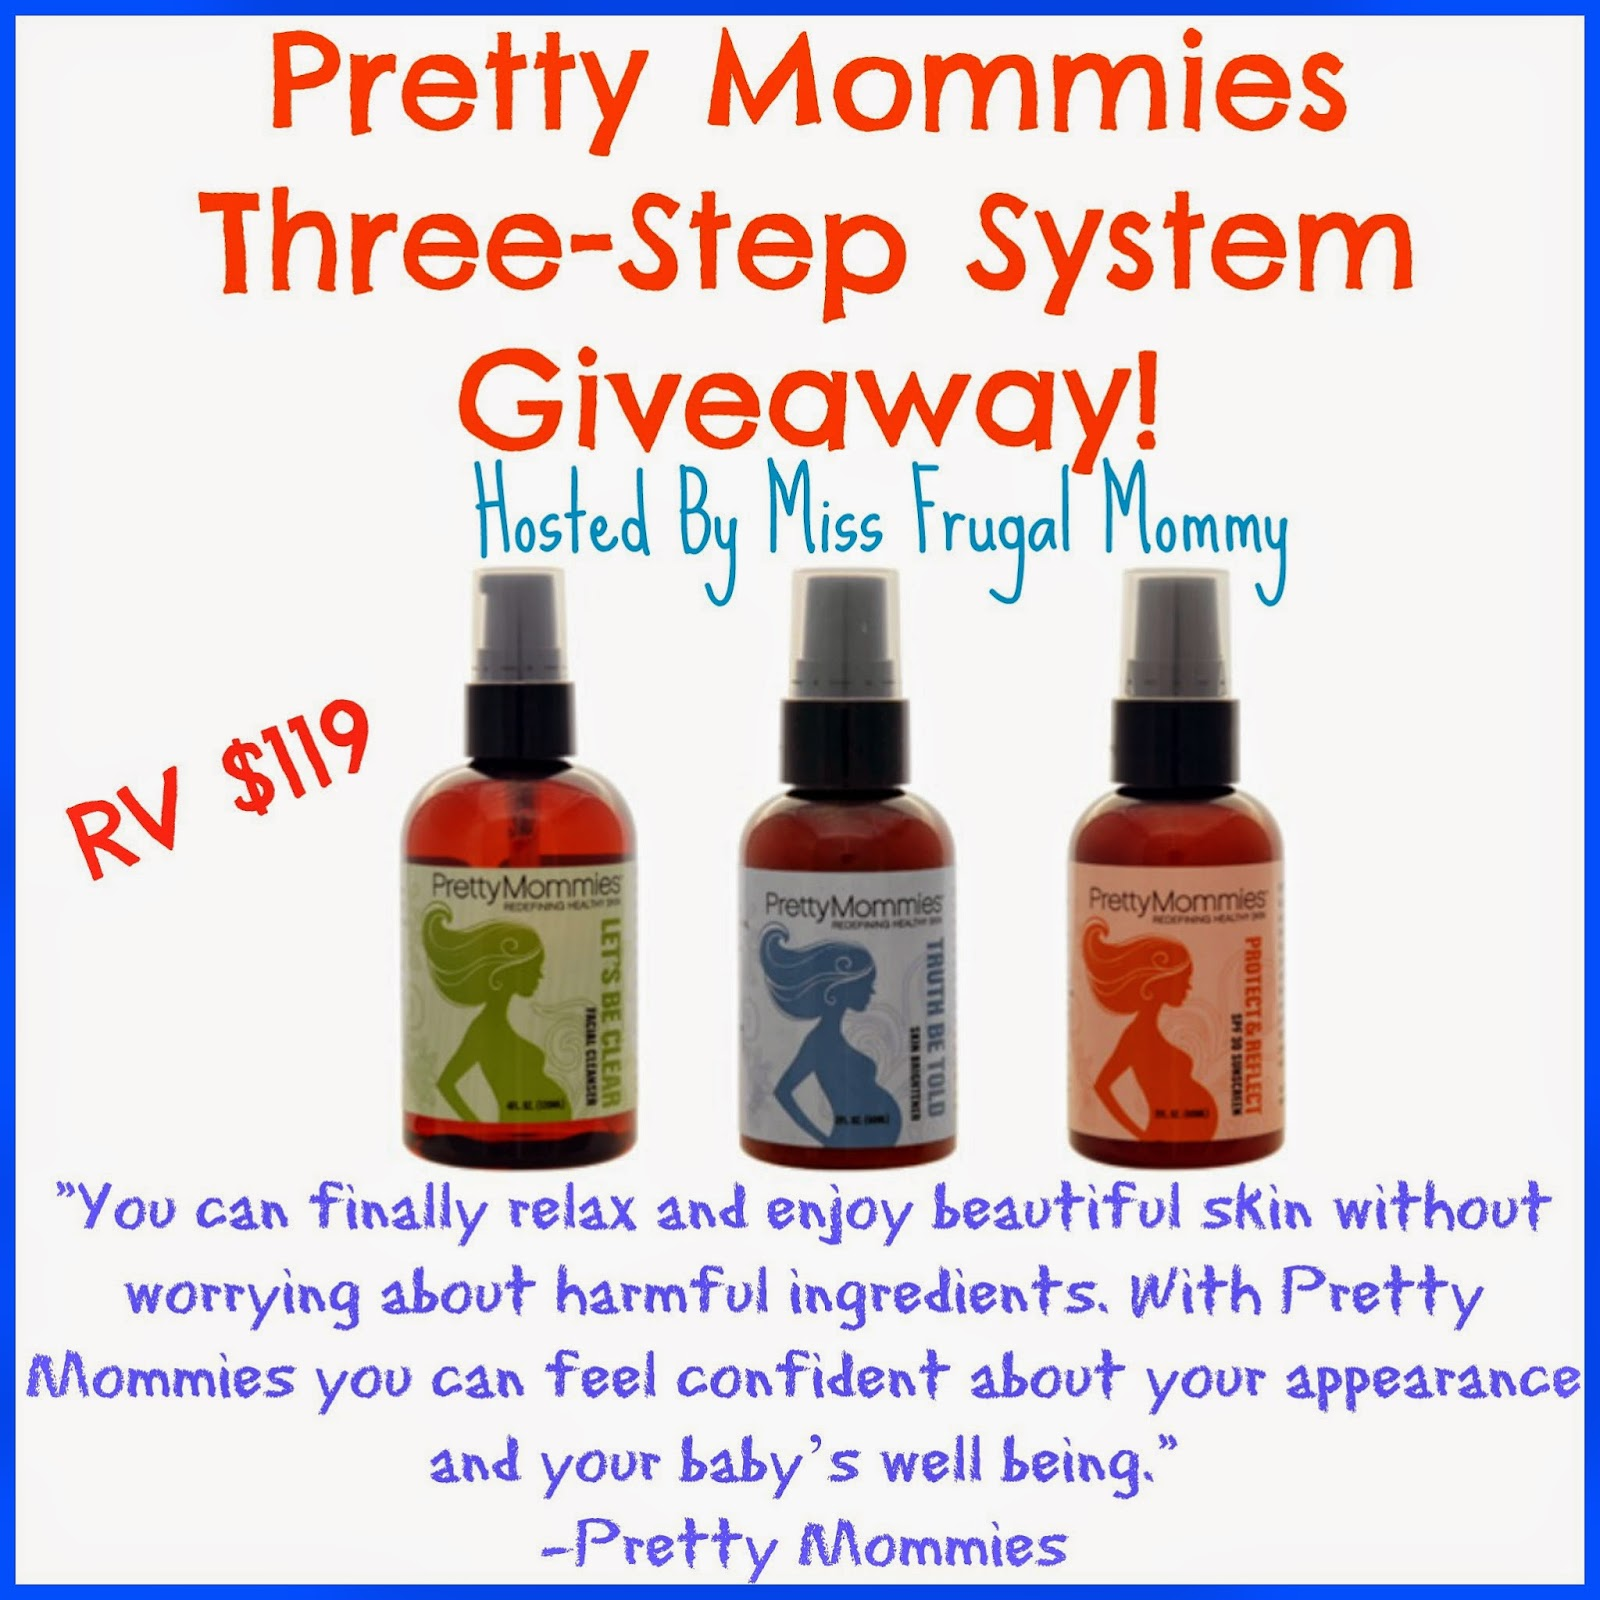 Pretty Mommies Skincare Three-Step System Giveaway